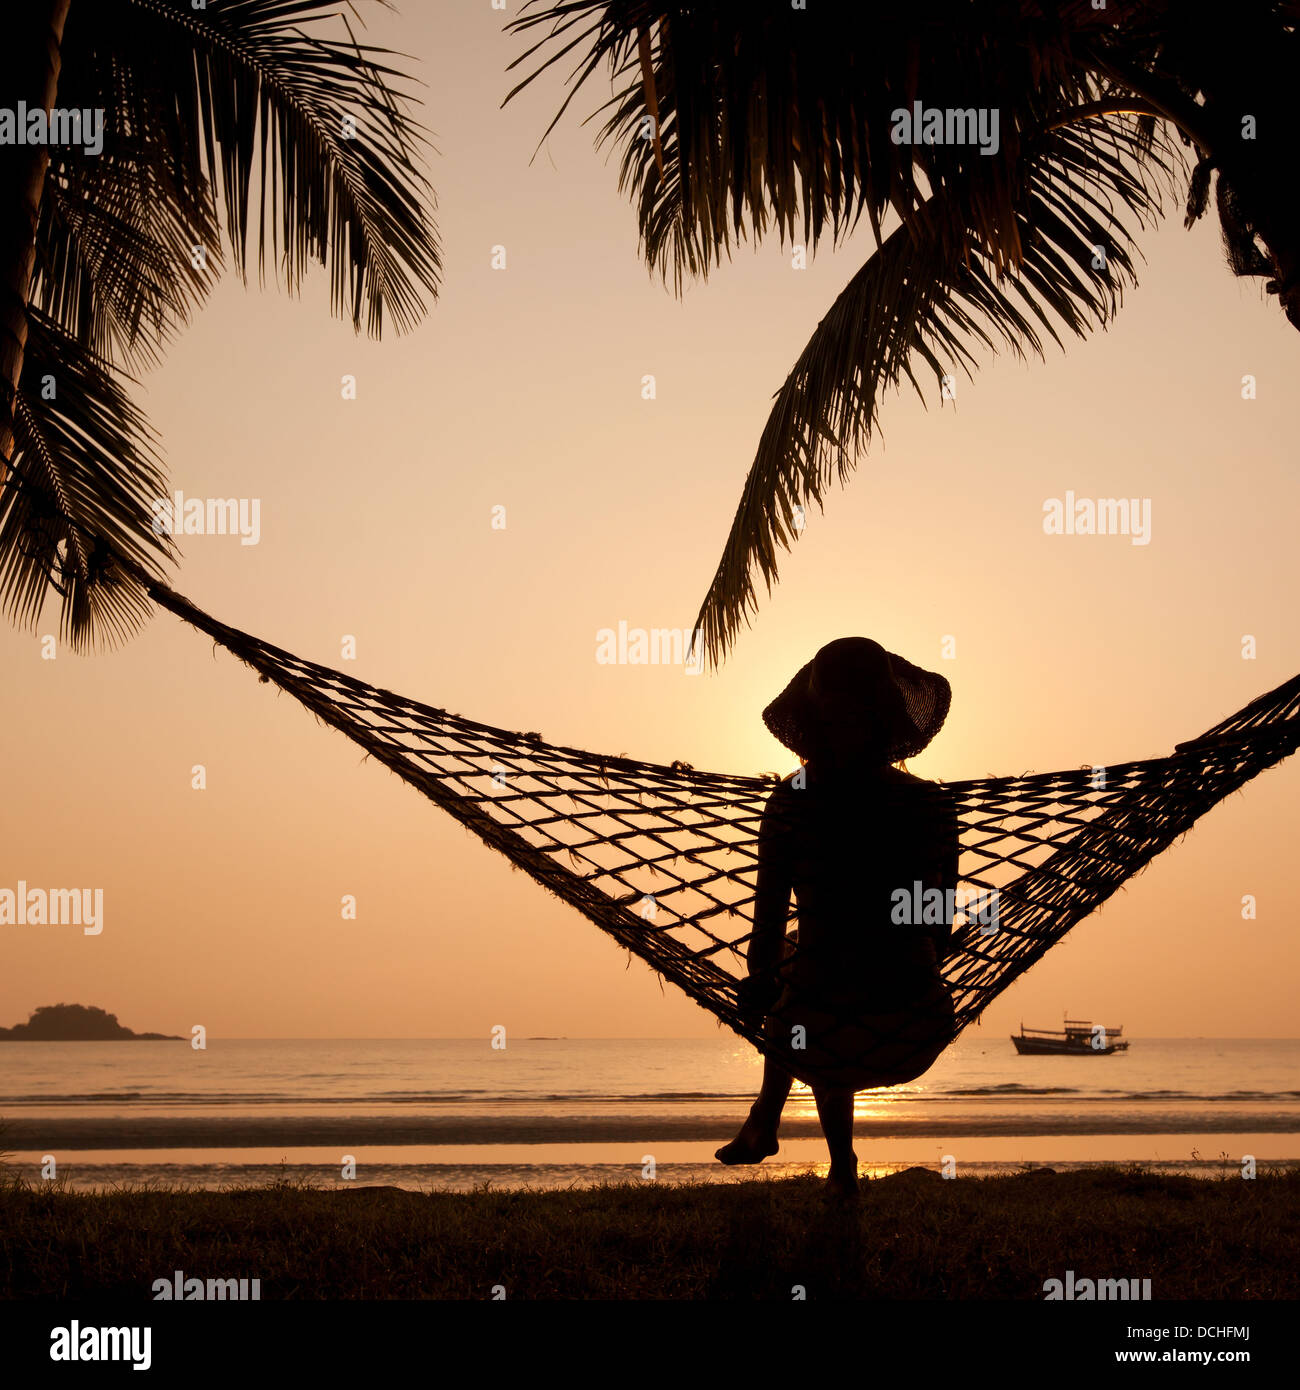 woman in hammock enjoying sunset on the beach - Stock Image